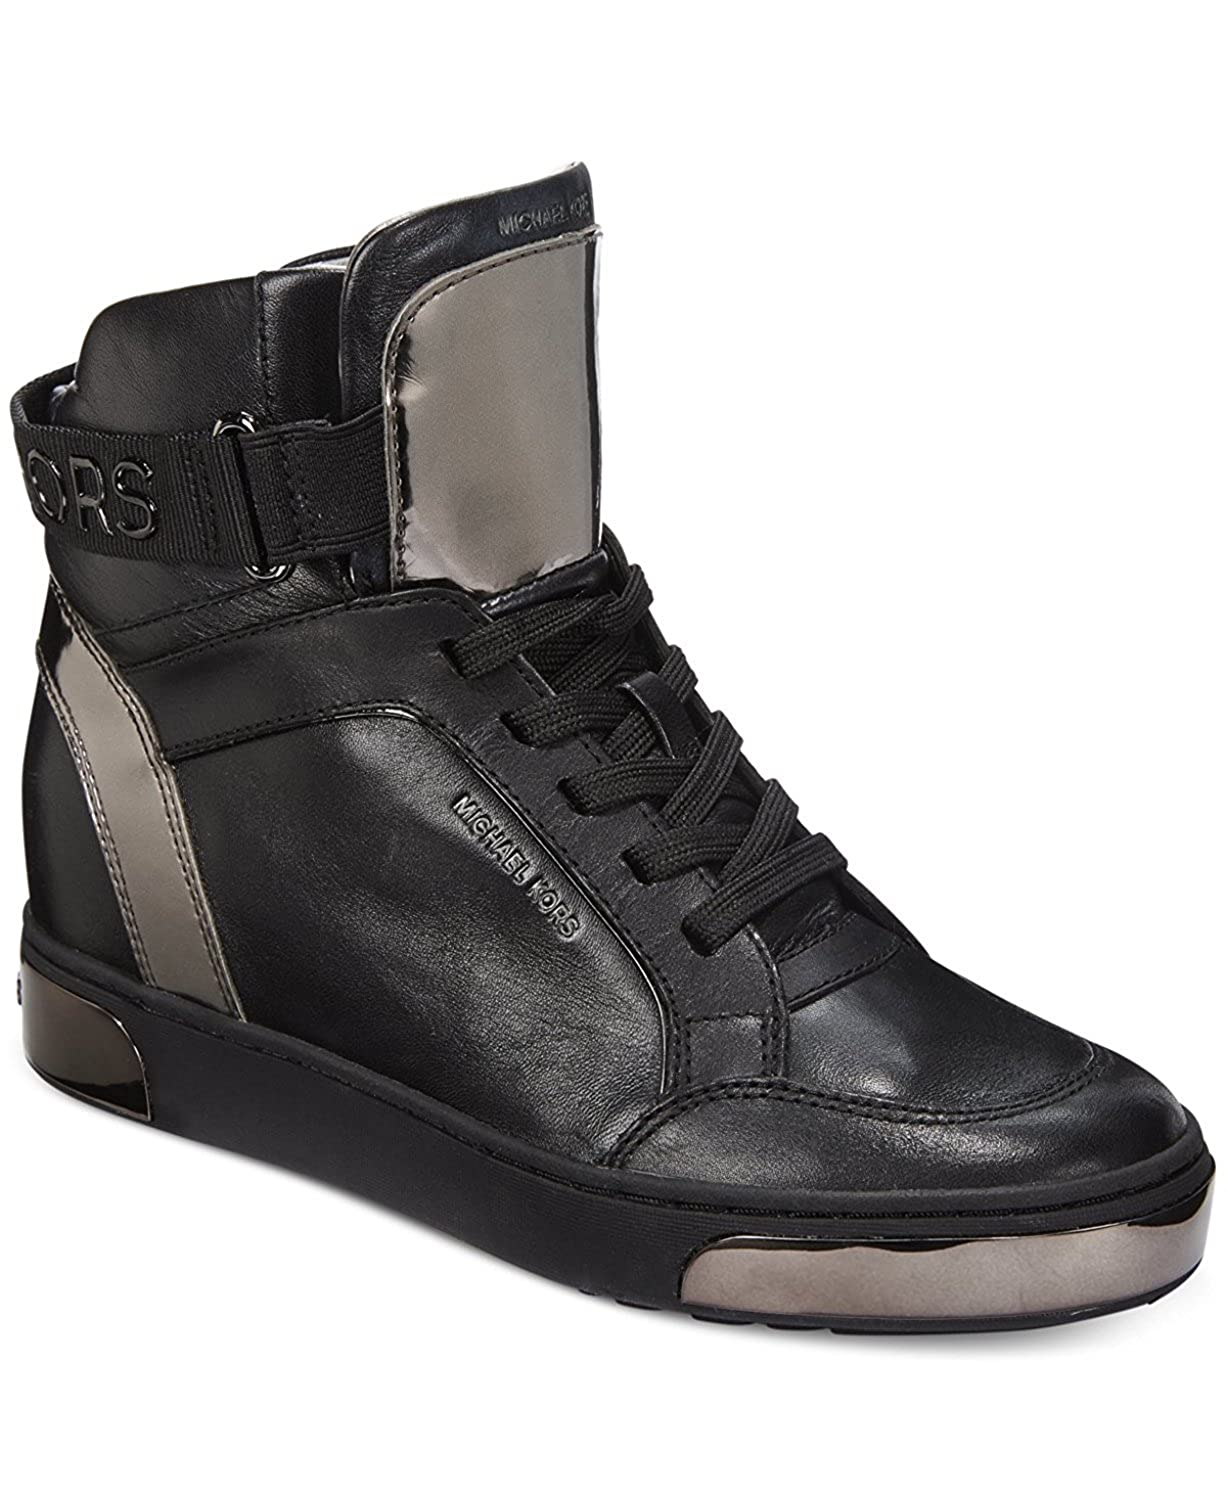 f563338c78 Amazon.com | Michael Michael Kors Pia High-Top Leather Fashion ...